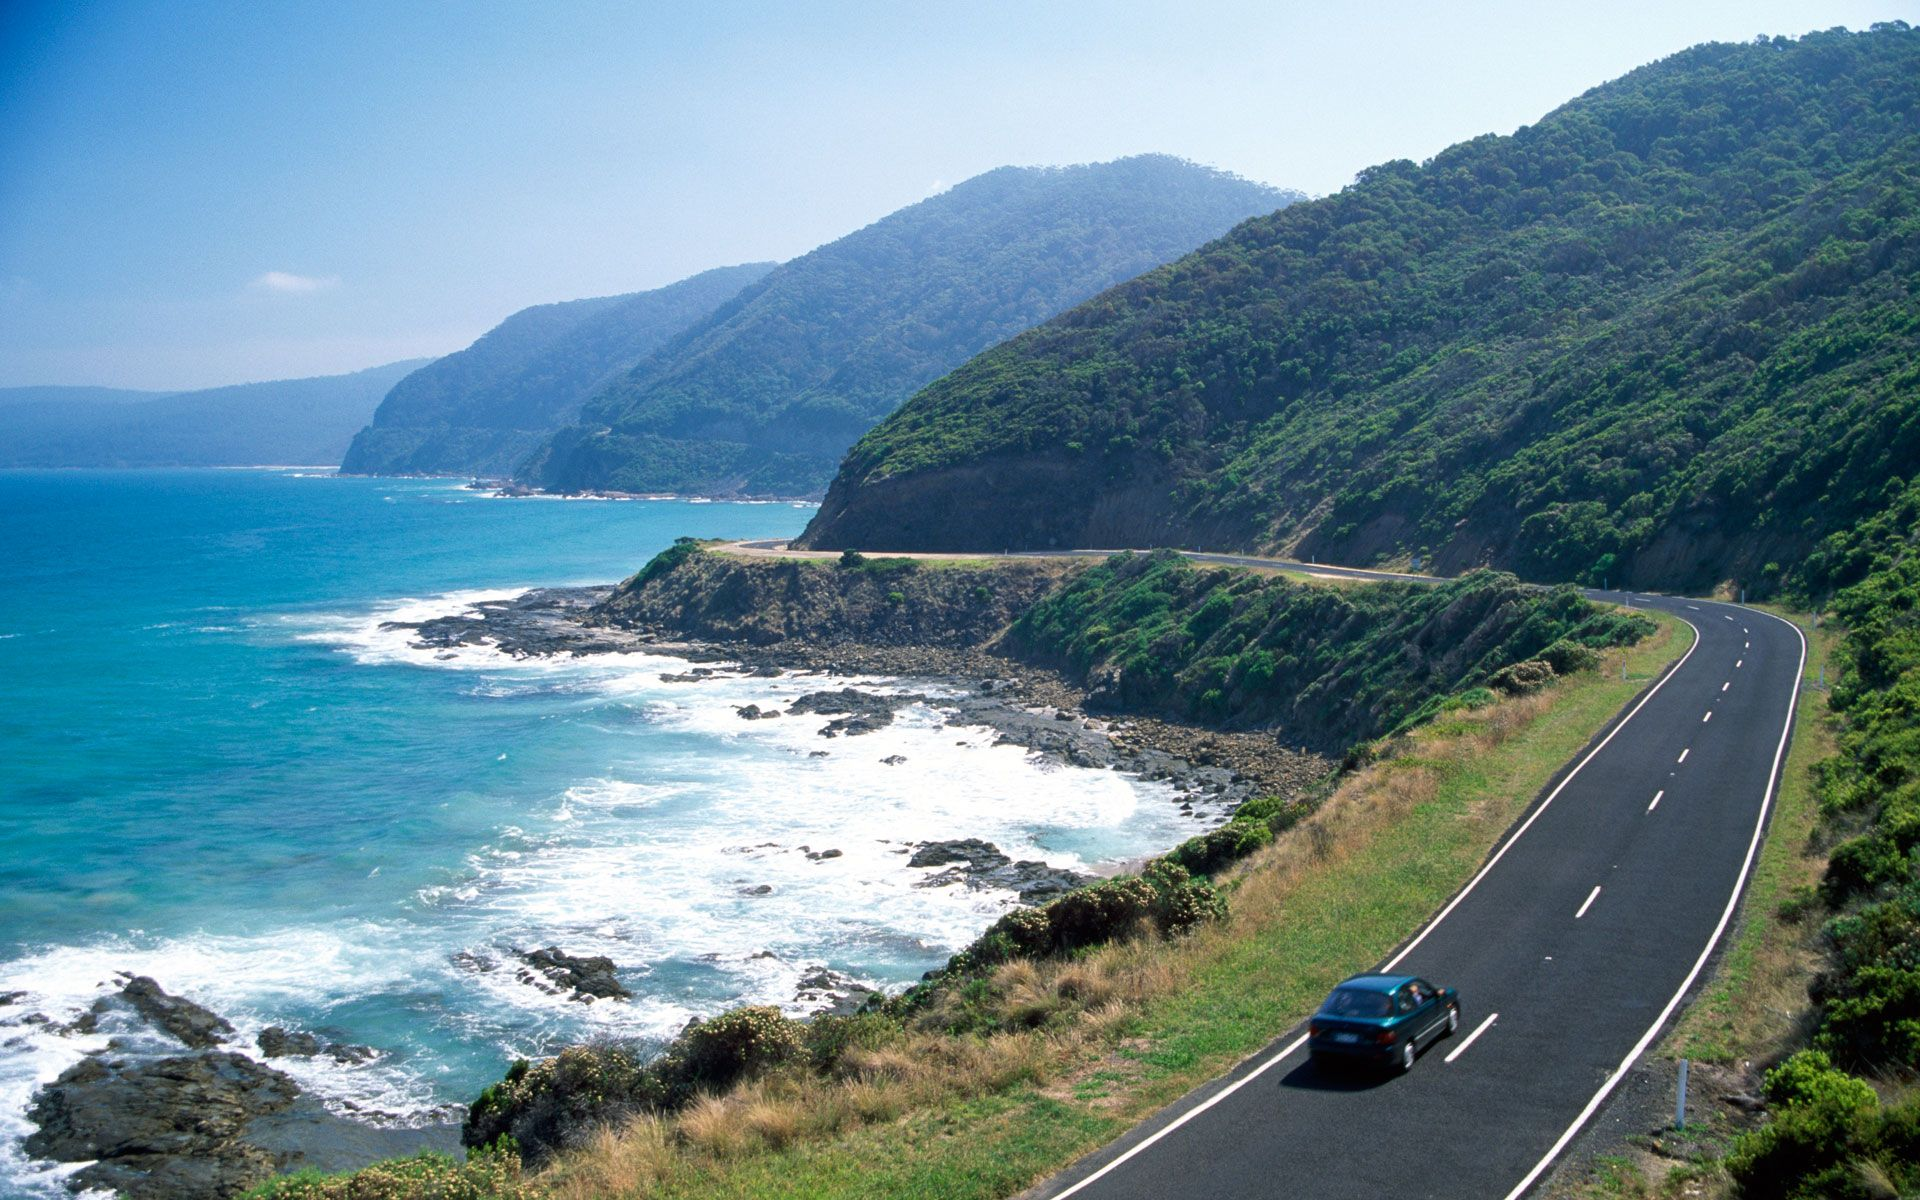 Places To Explore On The World's Most Scenic Road Trip